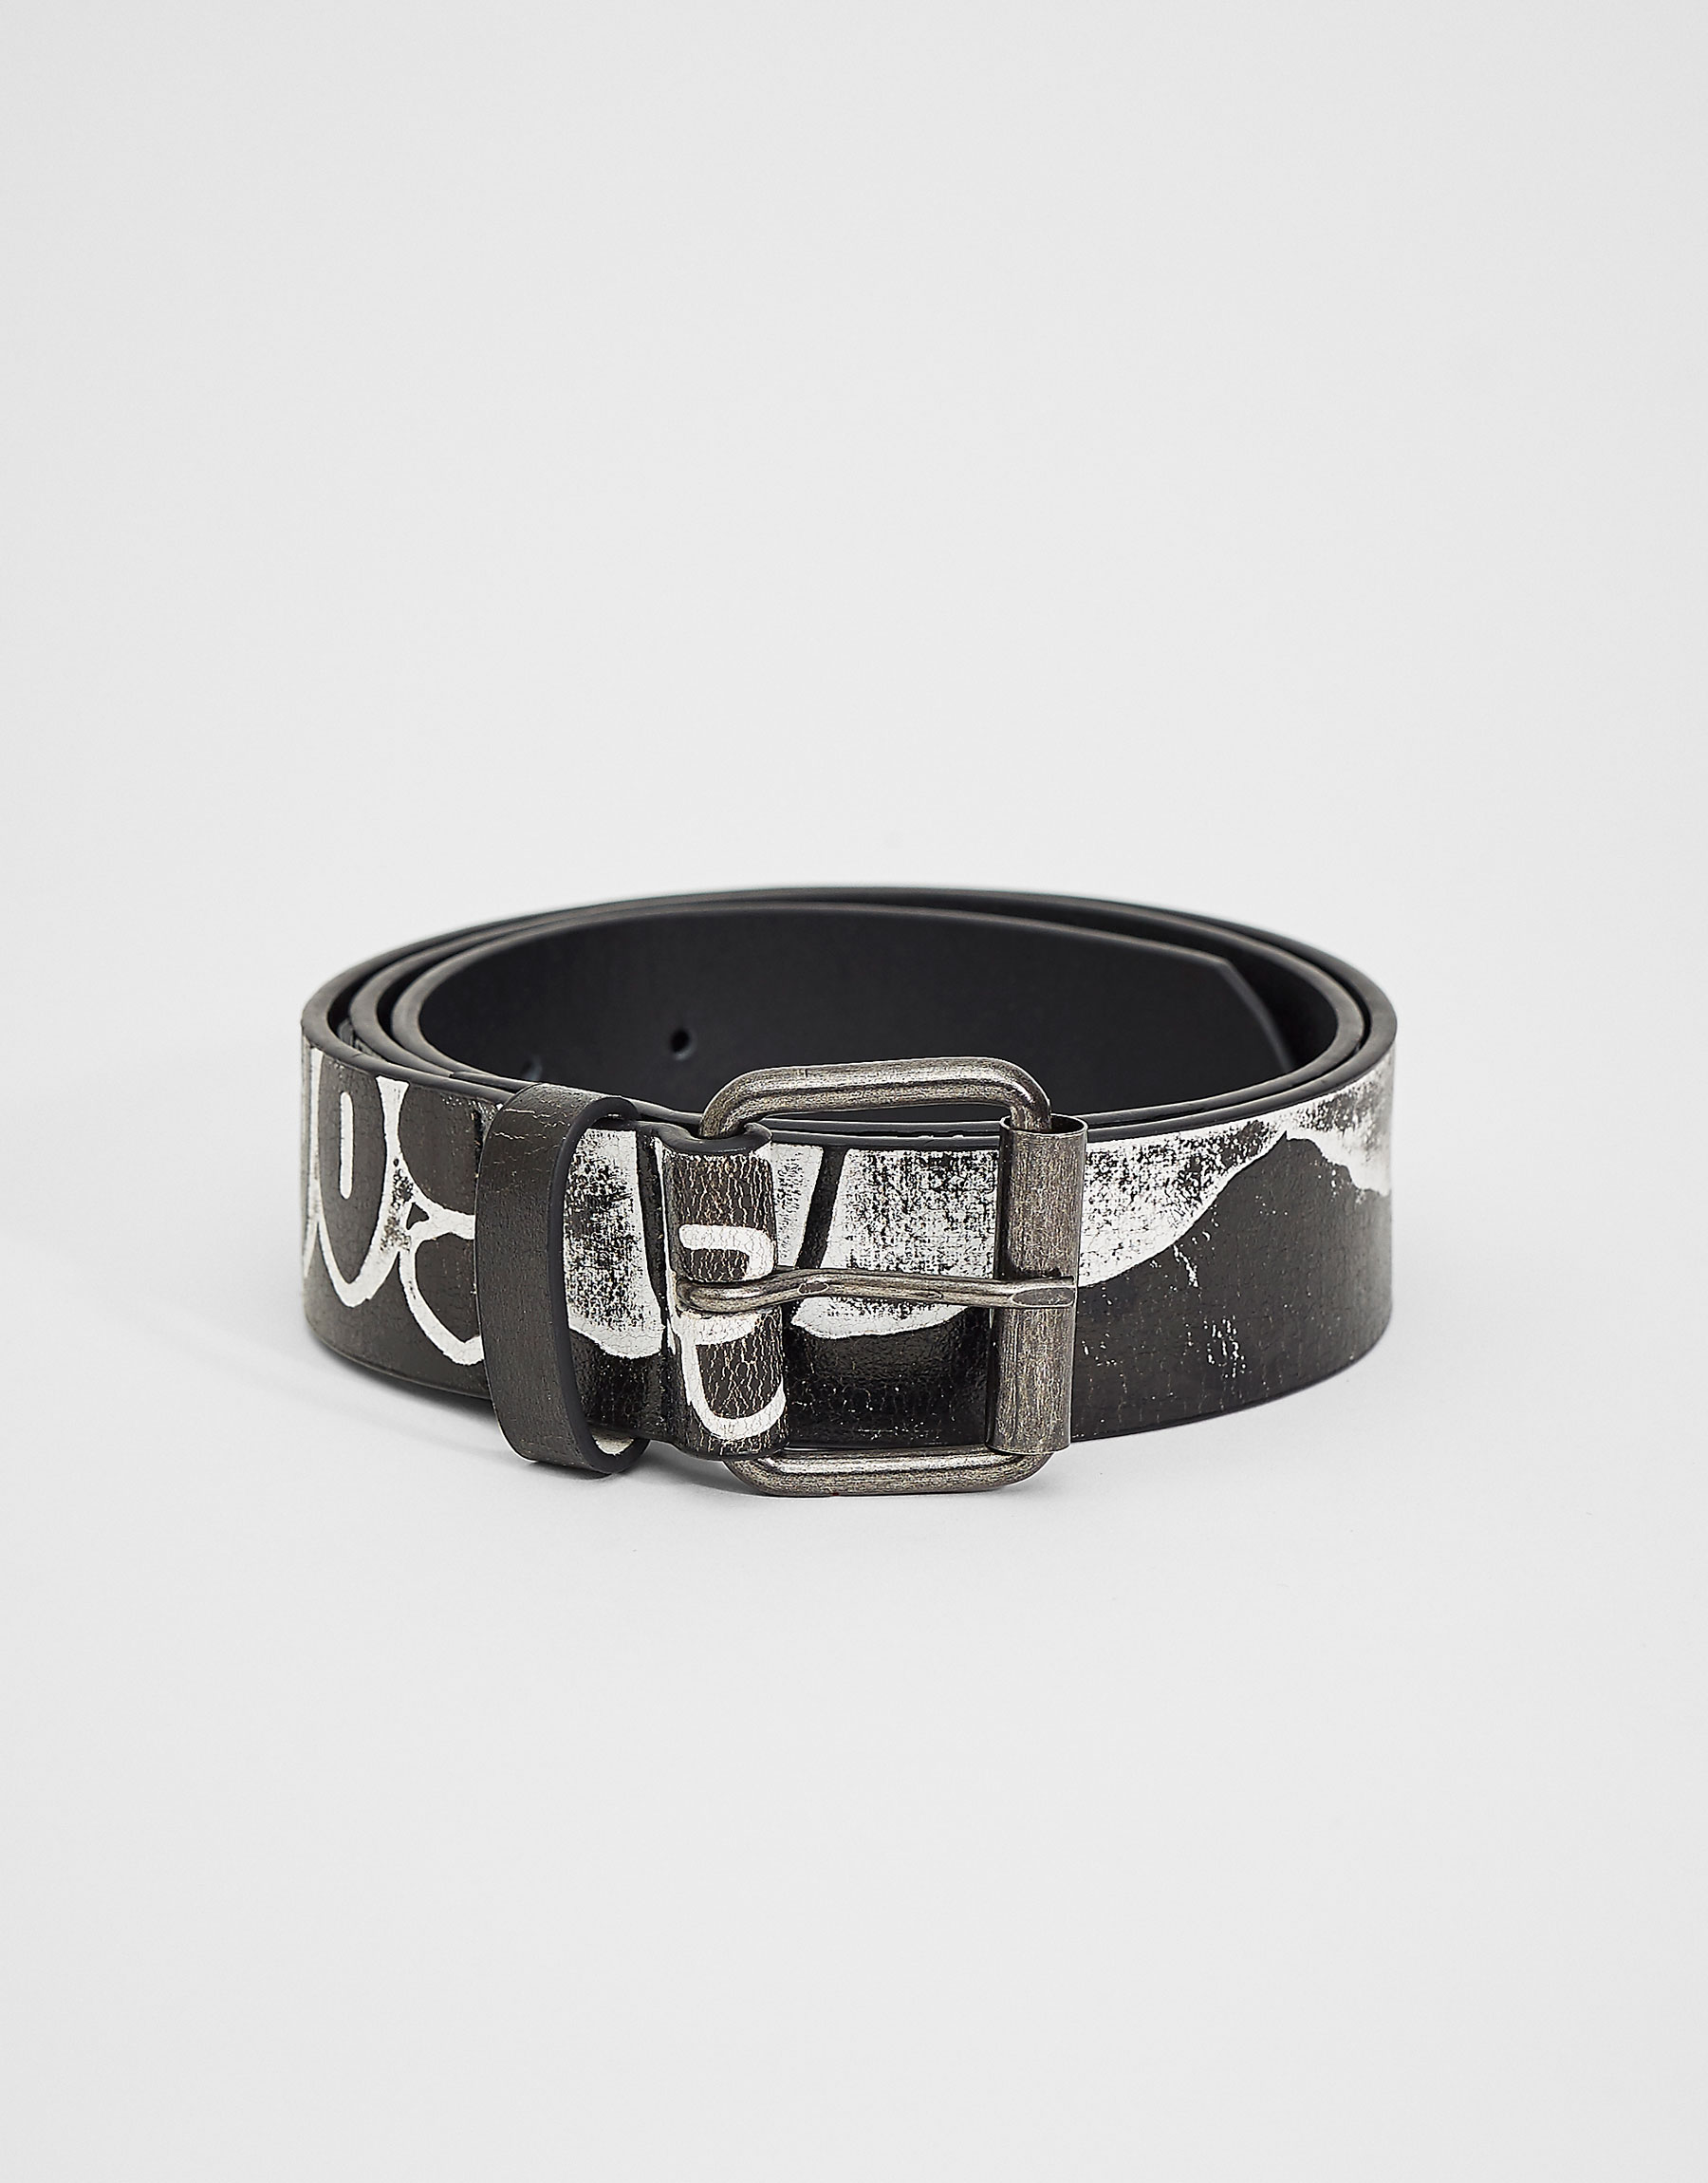 'Ever young' printed belt